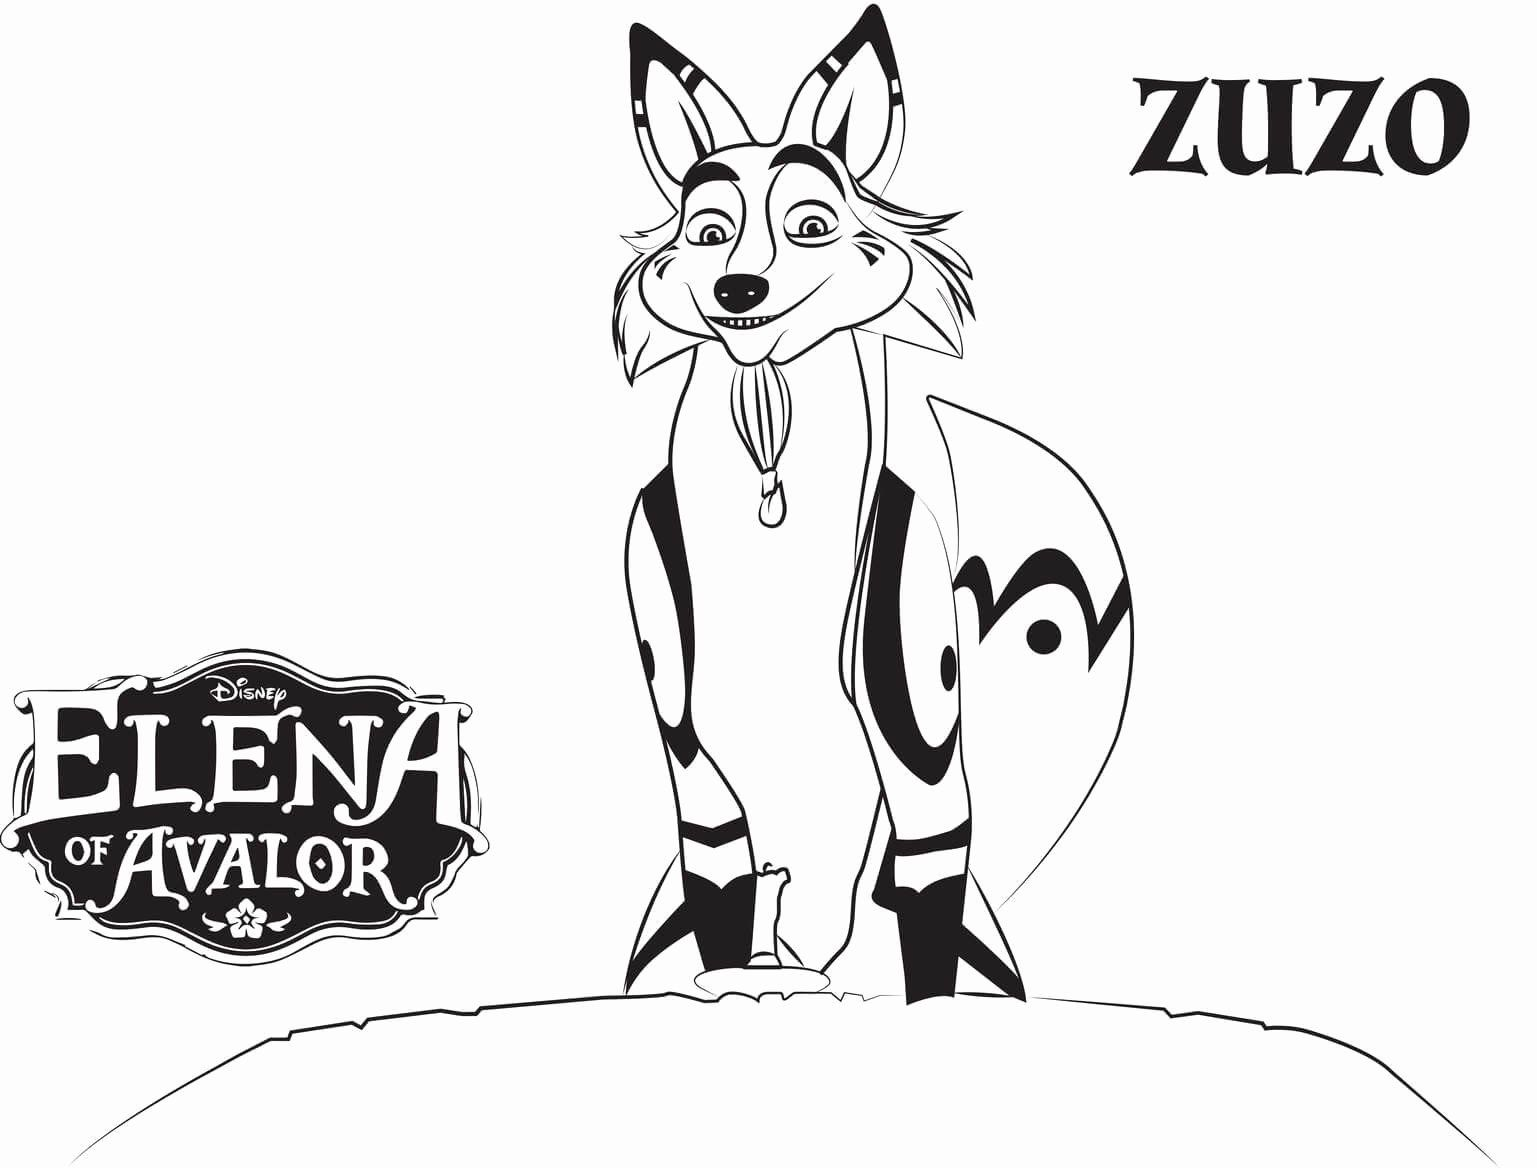 Elena Of Avalor Coloring Page New Top 10 Elena Avalor Coloring Pages Disney Coloring Pages Coloring Pages Cartoon Coloring Pages [ 1168 x 1537 Pixel ]